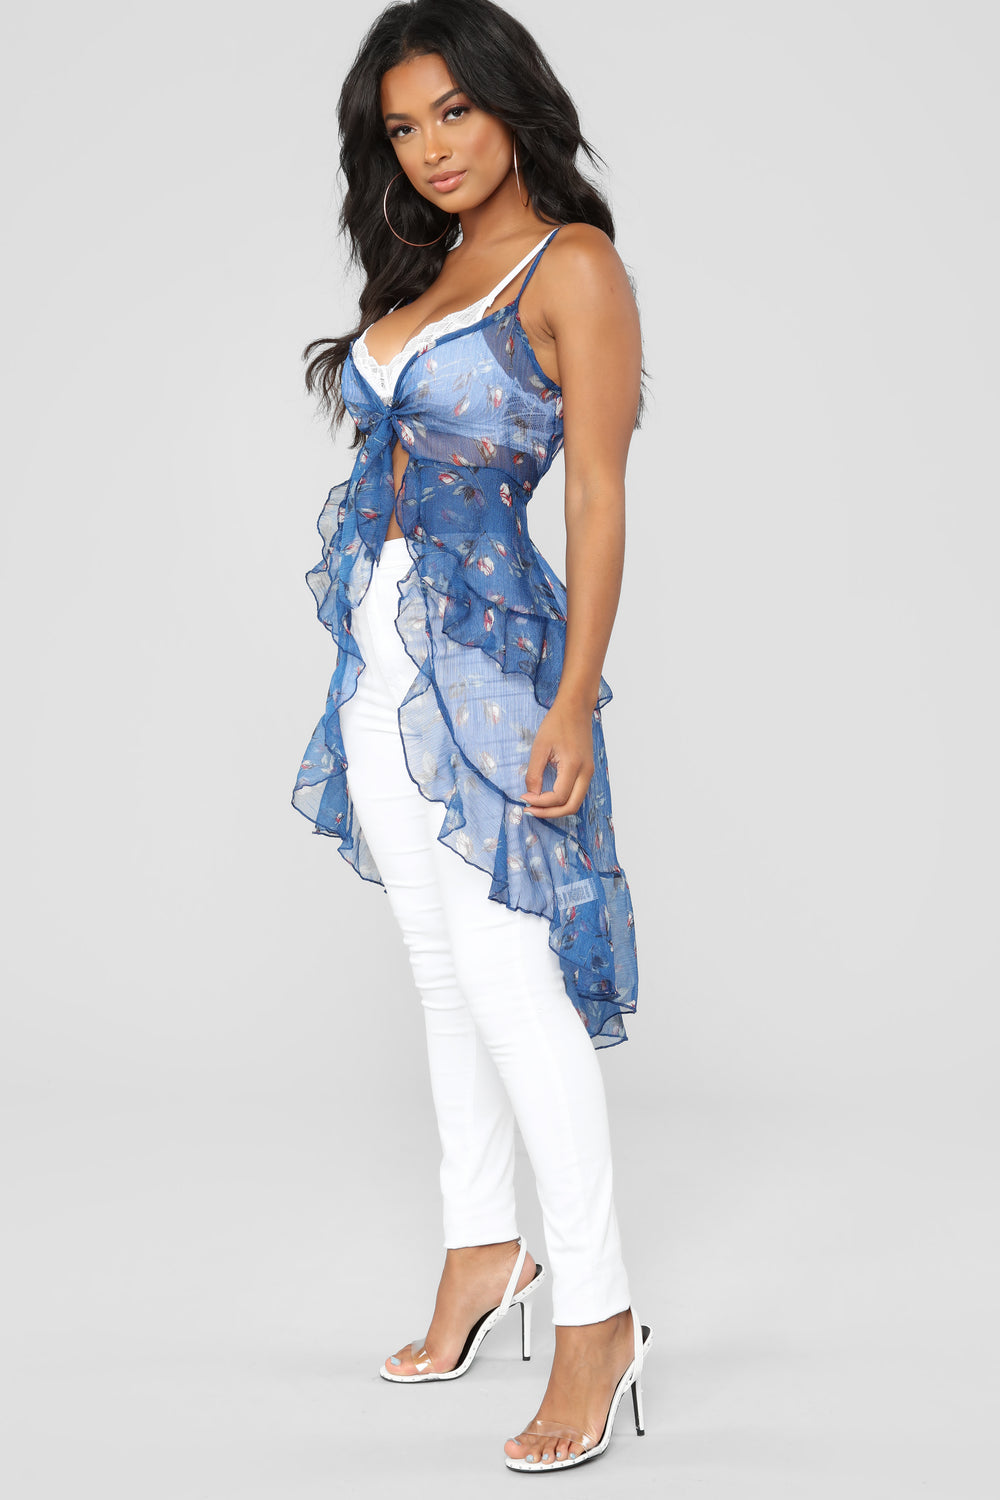 Forever Dreamin' Ruffle Top - Blue/combo